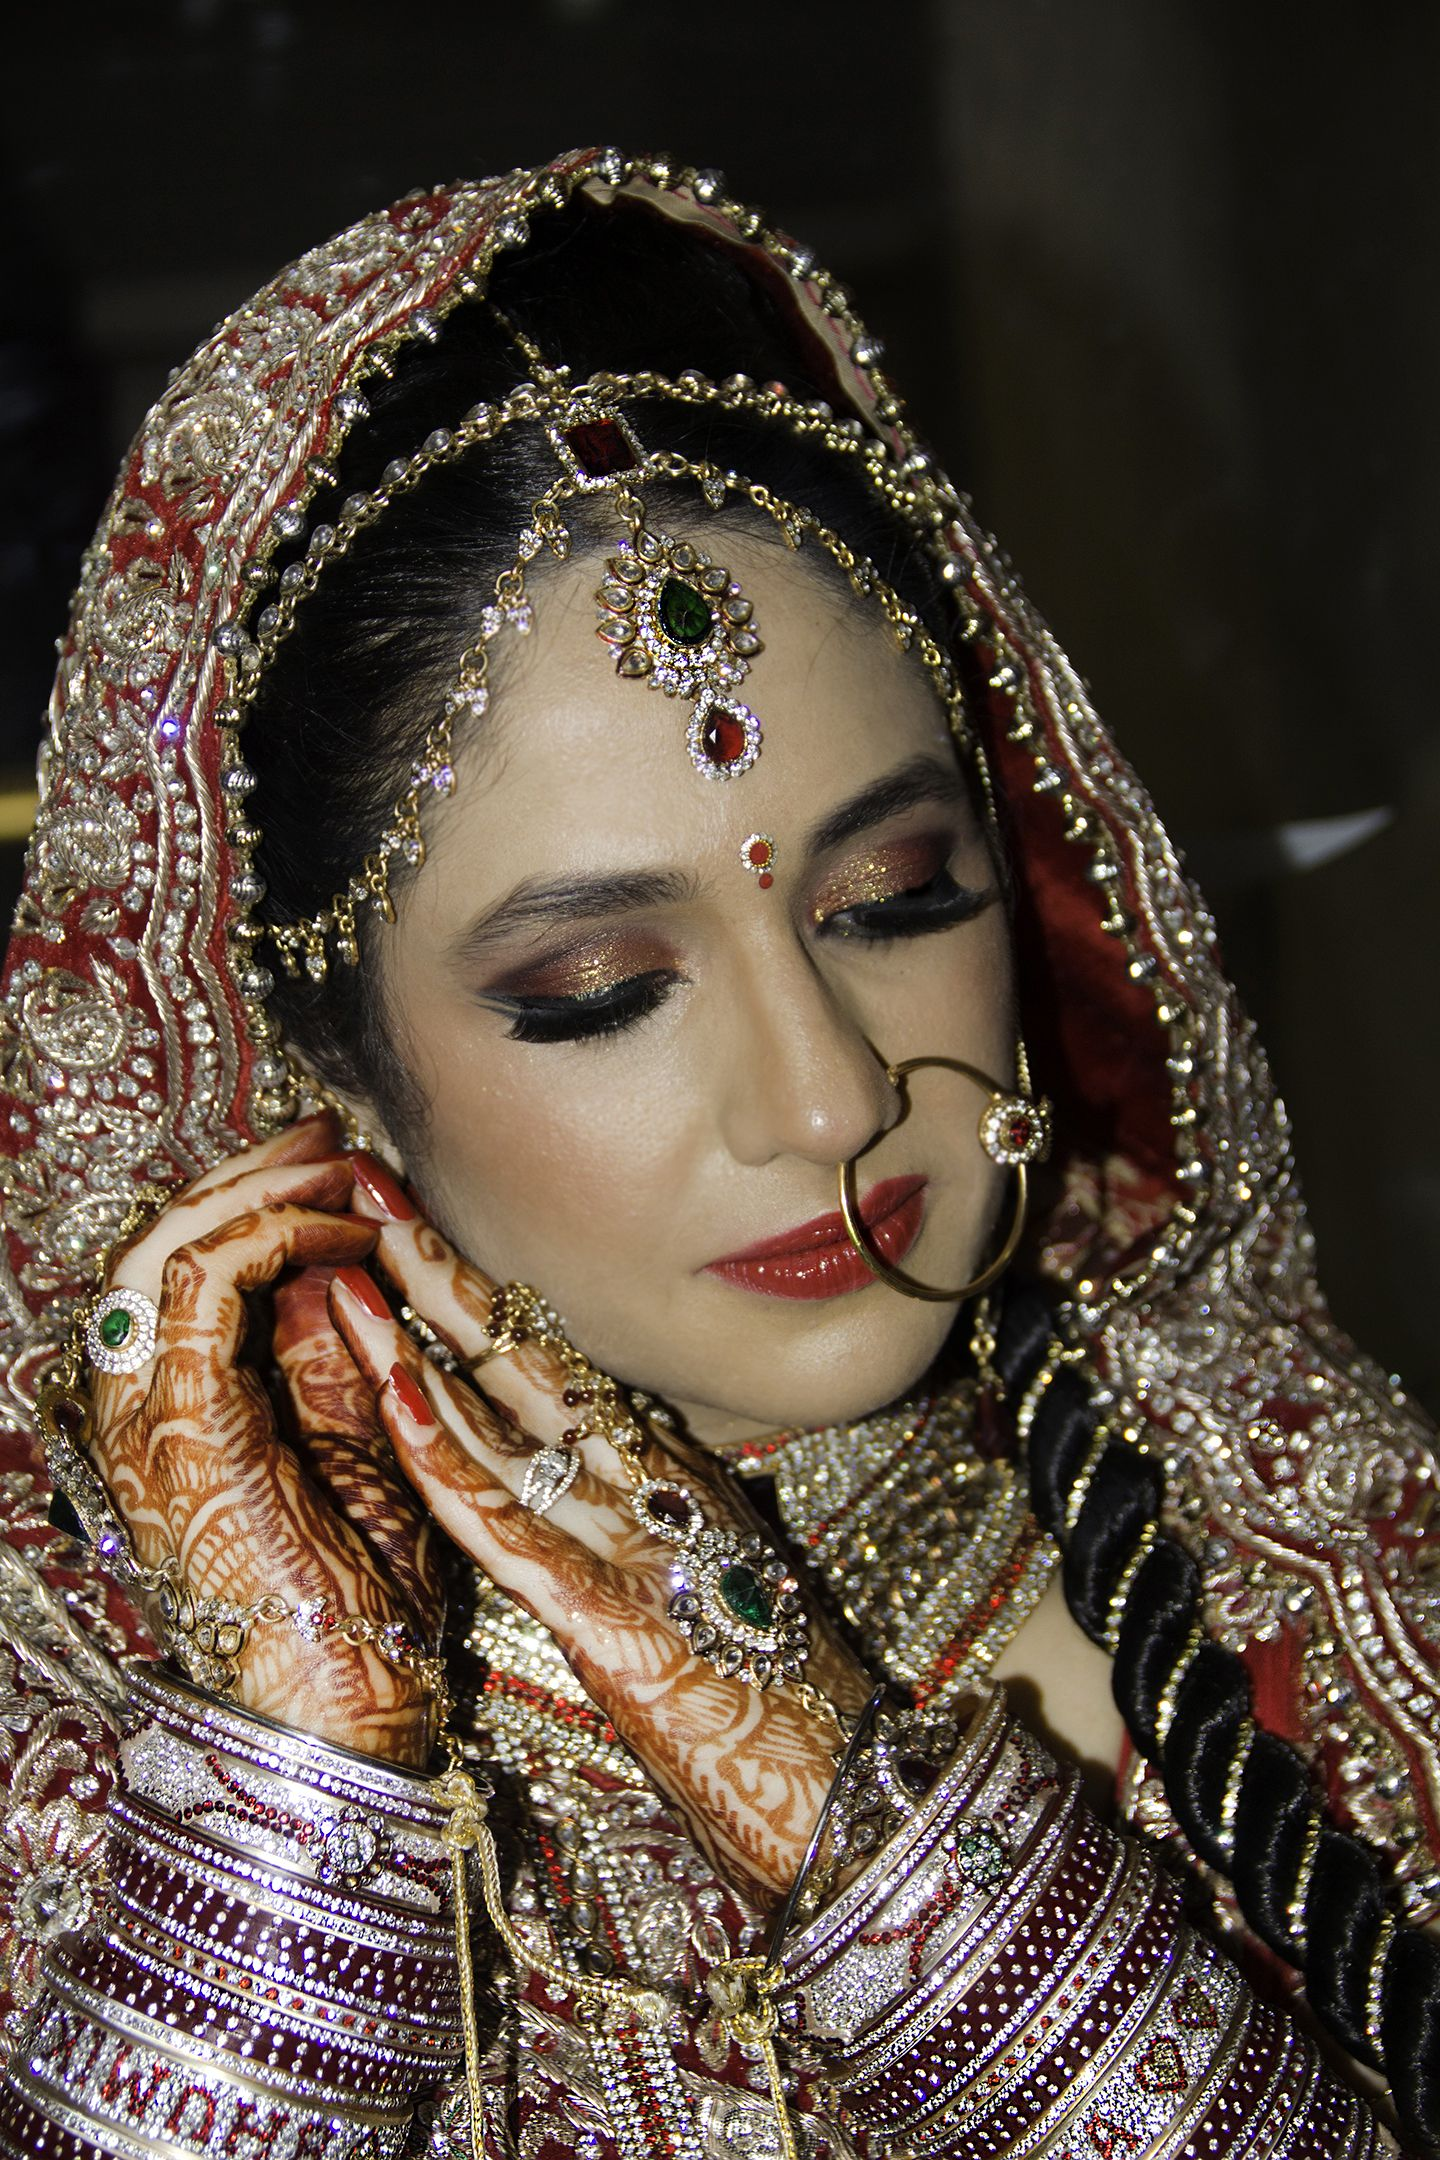 Professional Makeup Artists In Kenya: Bridal Makeup By MJ In Lucknow. Professional Makeup Artist